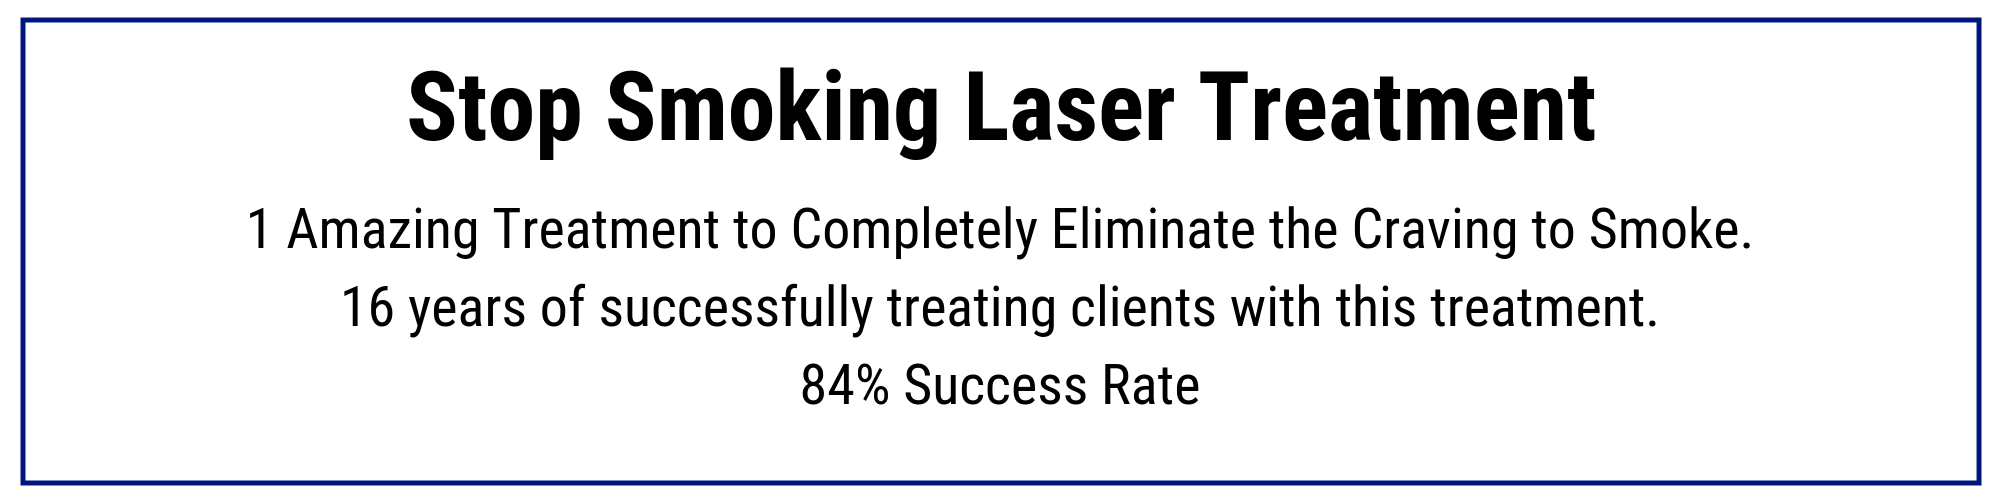 laser surgery to quit smoking reviews